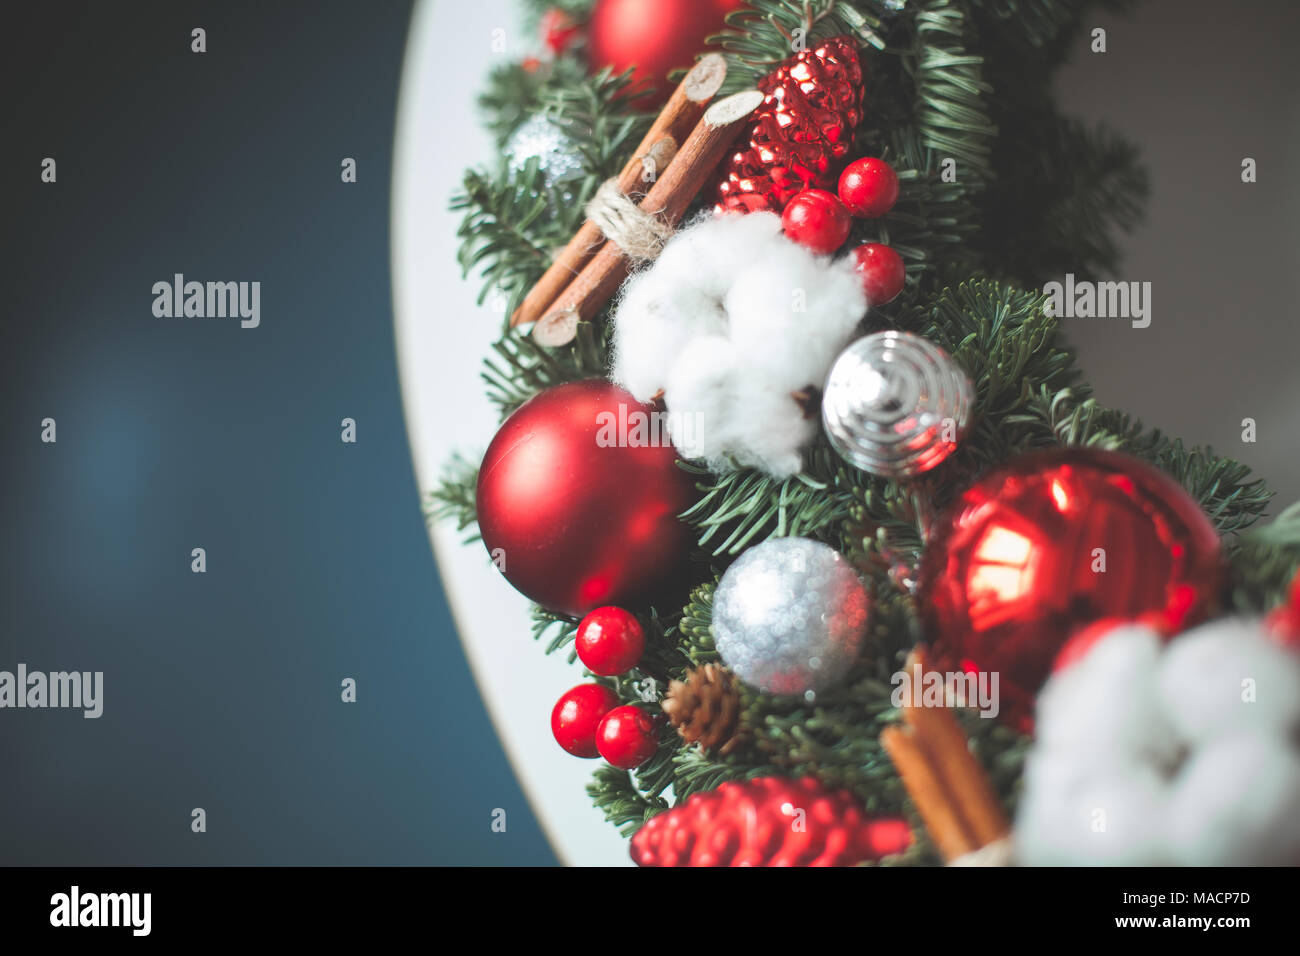 Christmas Background with Xmas Evergreen Twig, Red Glass Balls and New Year Decorations - Stock Image